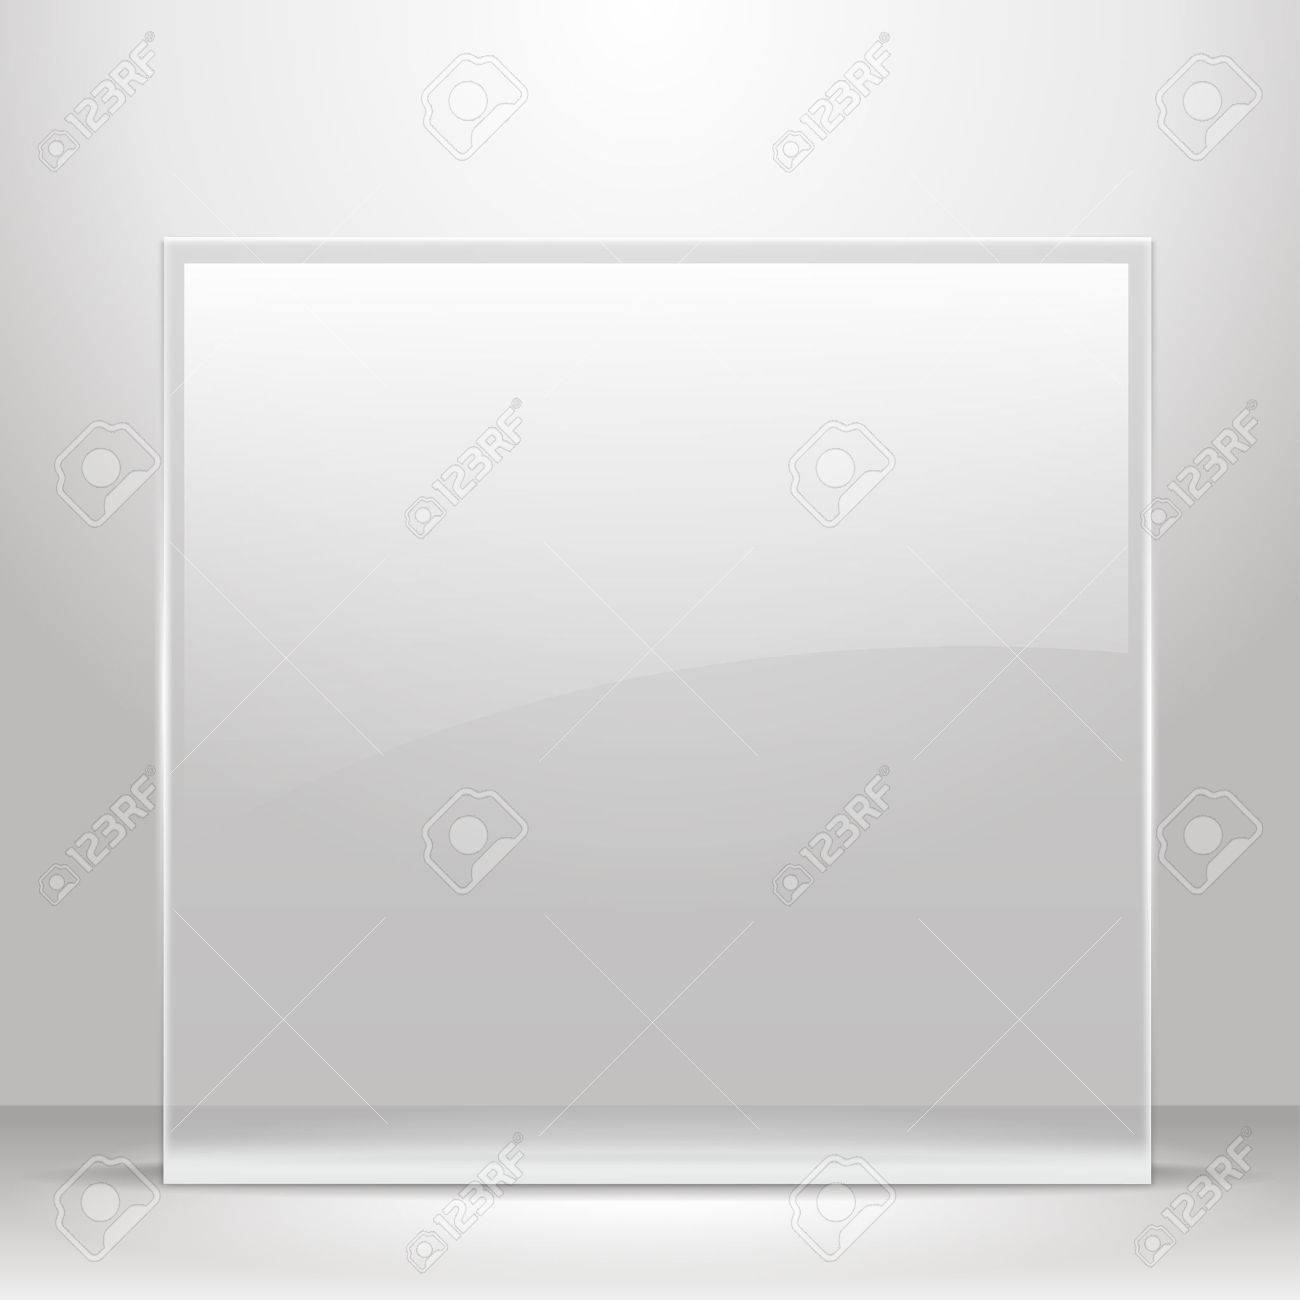 Glass frame for images and advertisement. Empty room. - 49384106